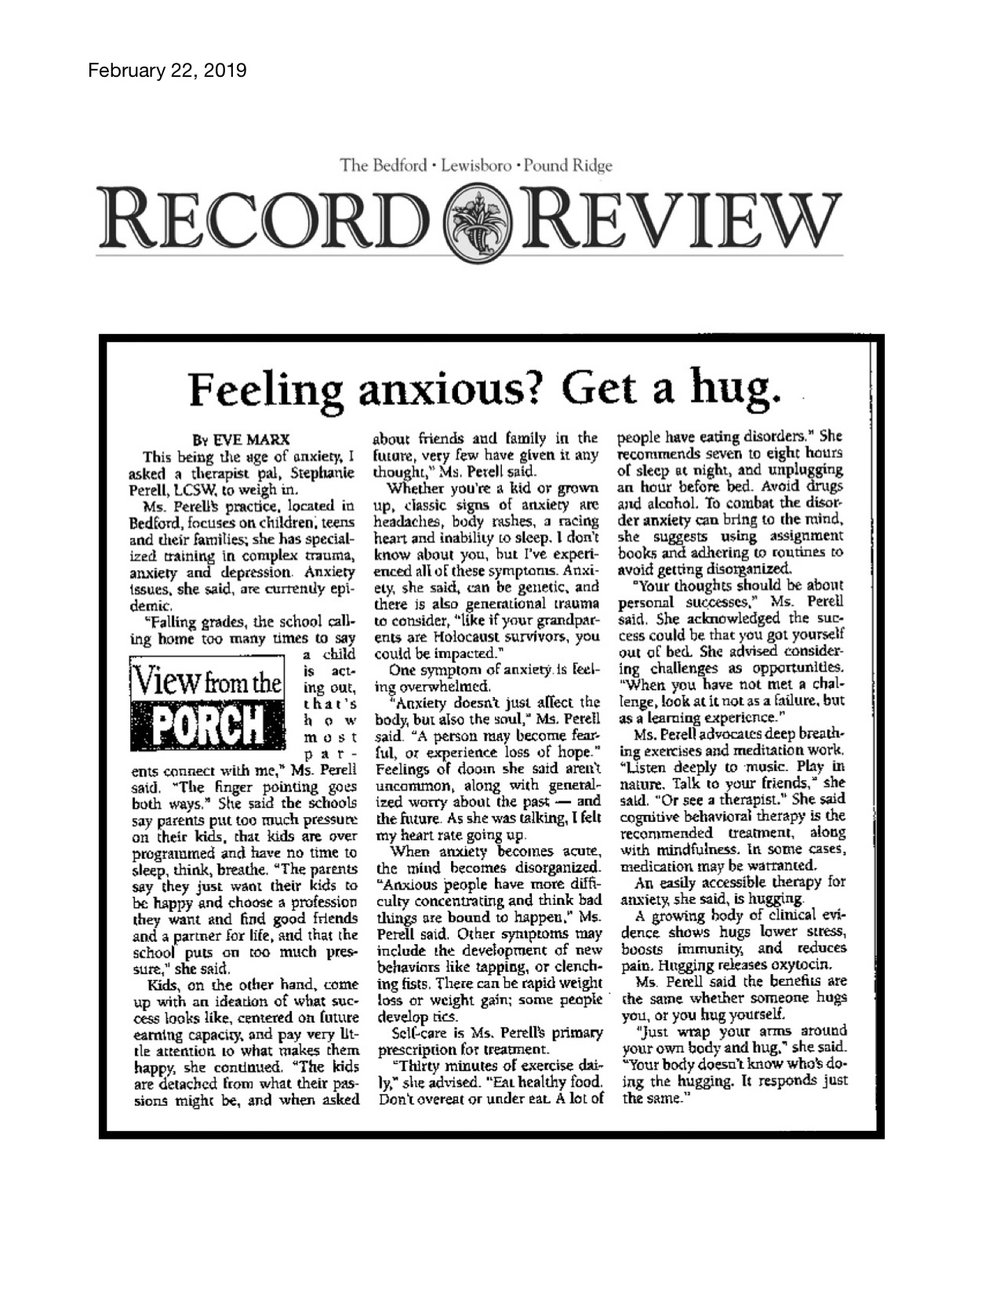 Record Review Article.jpg